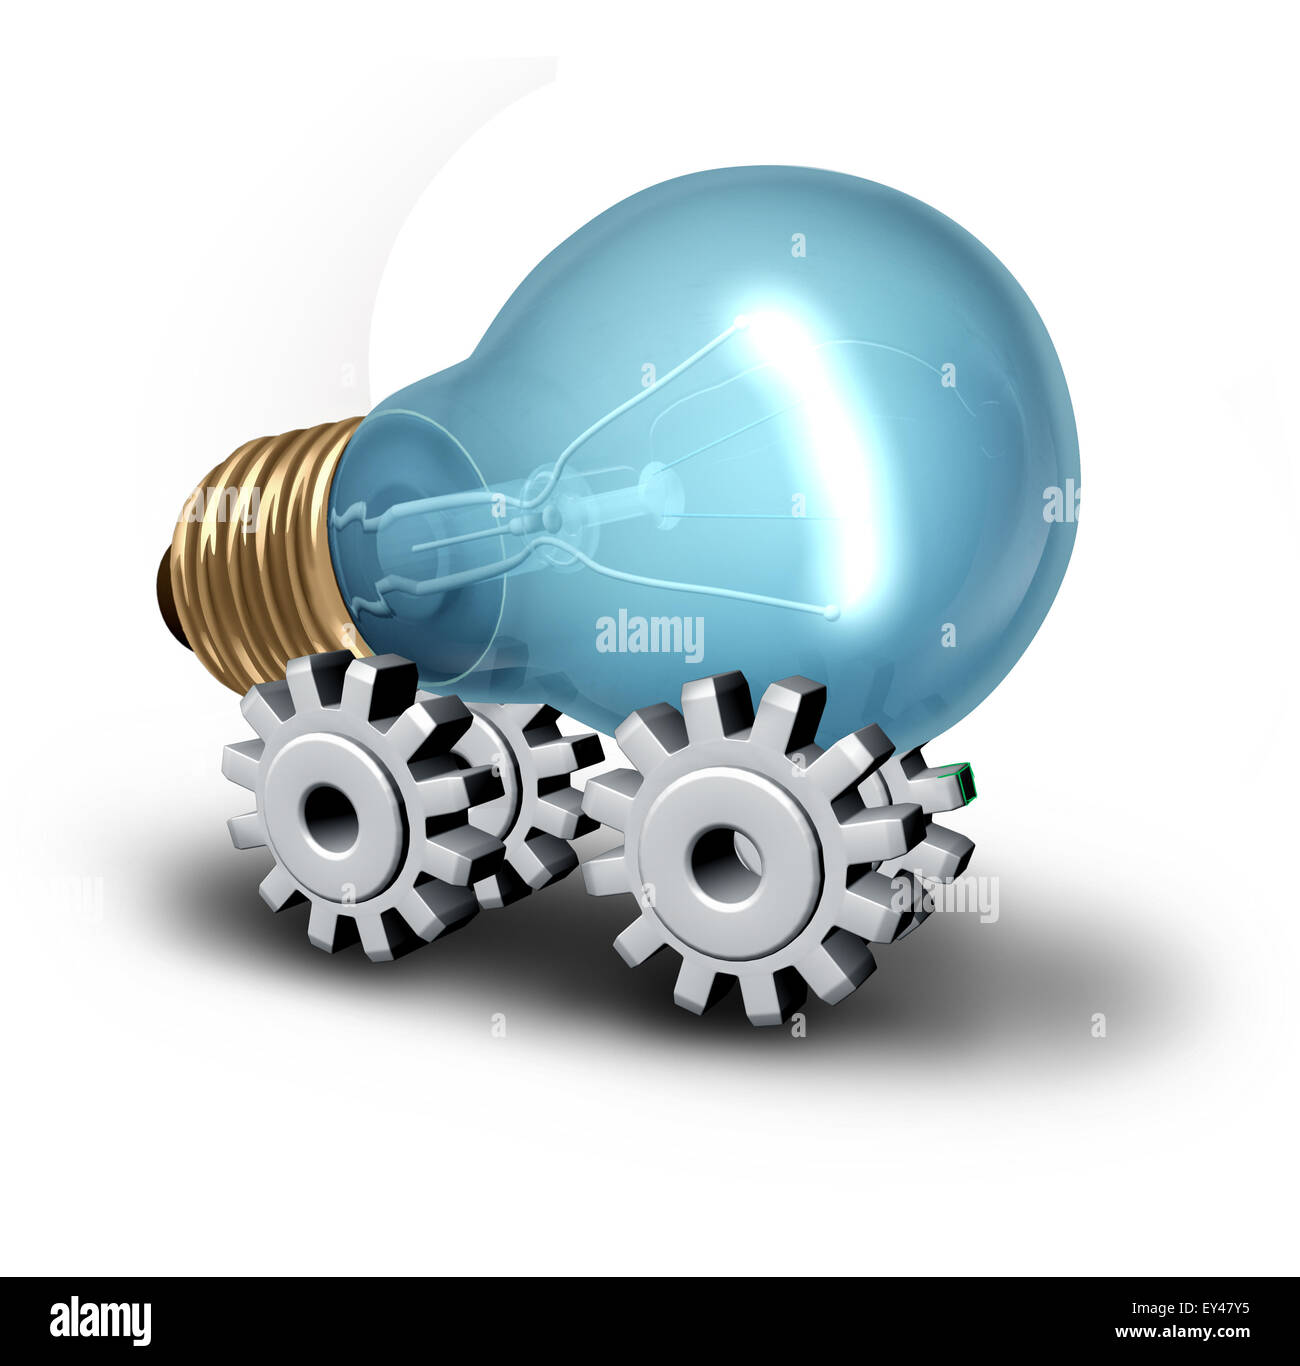 Electricicity industry concept and electric vehicle idea as a lightbulb on gear or cogwheels as a symbol for innovative - Stock Image